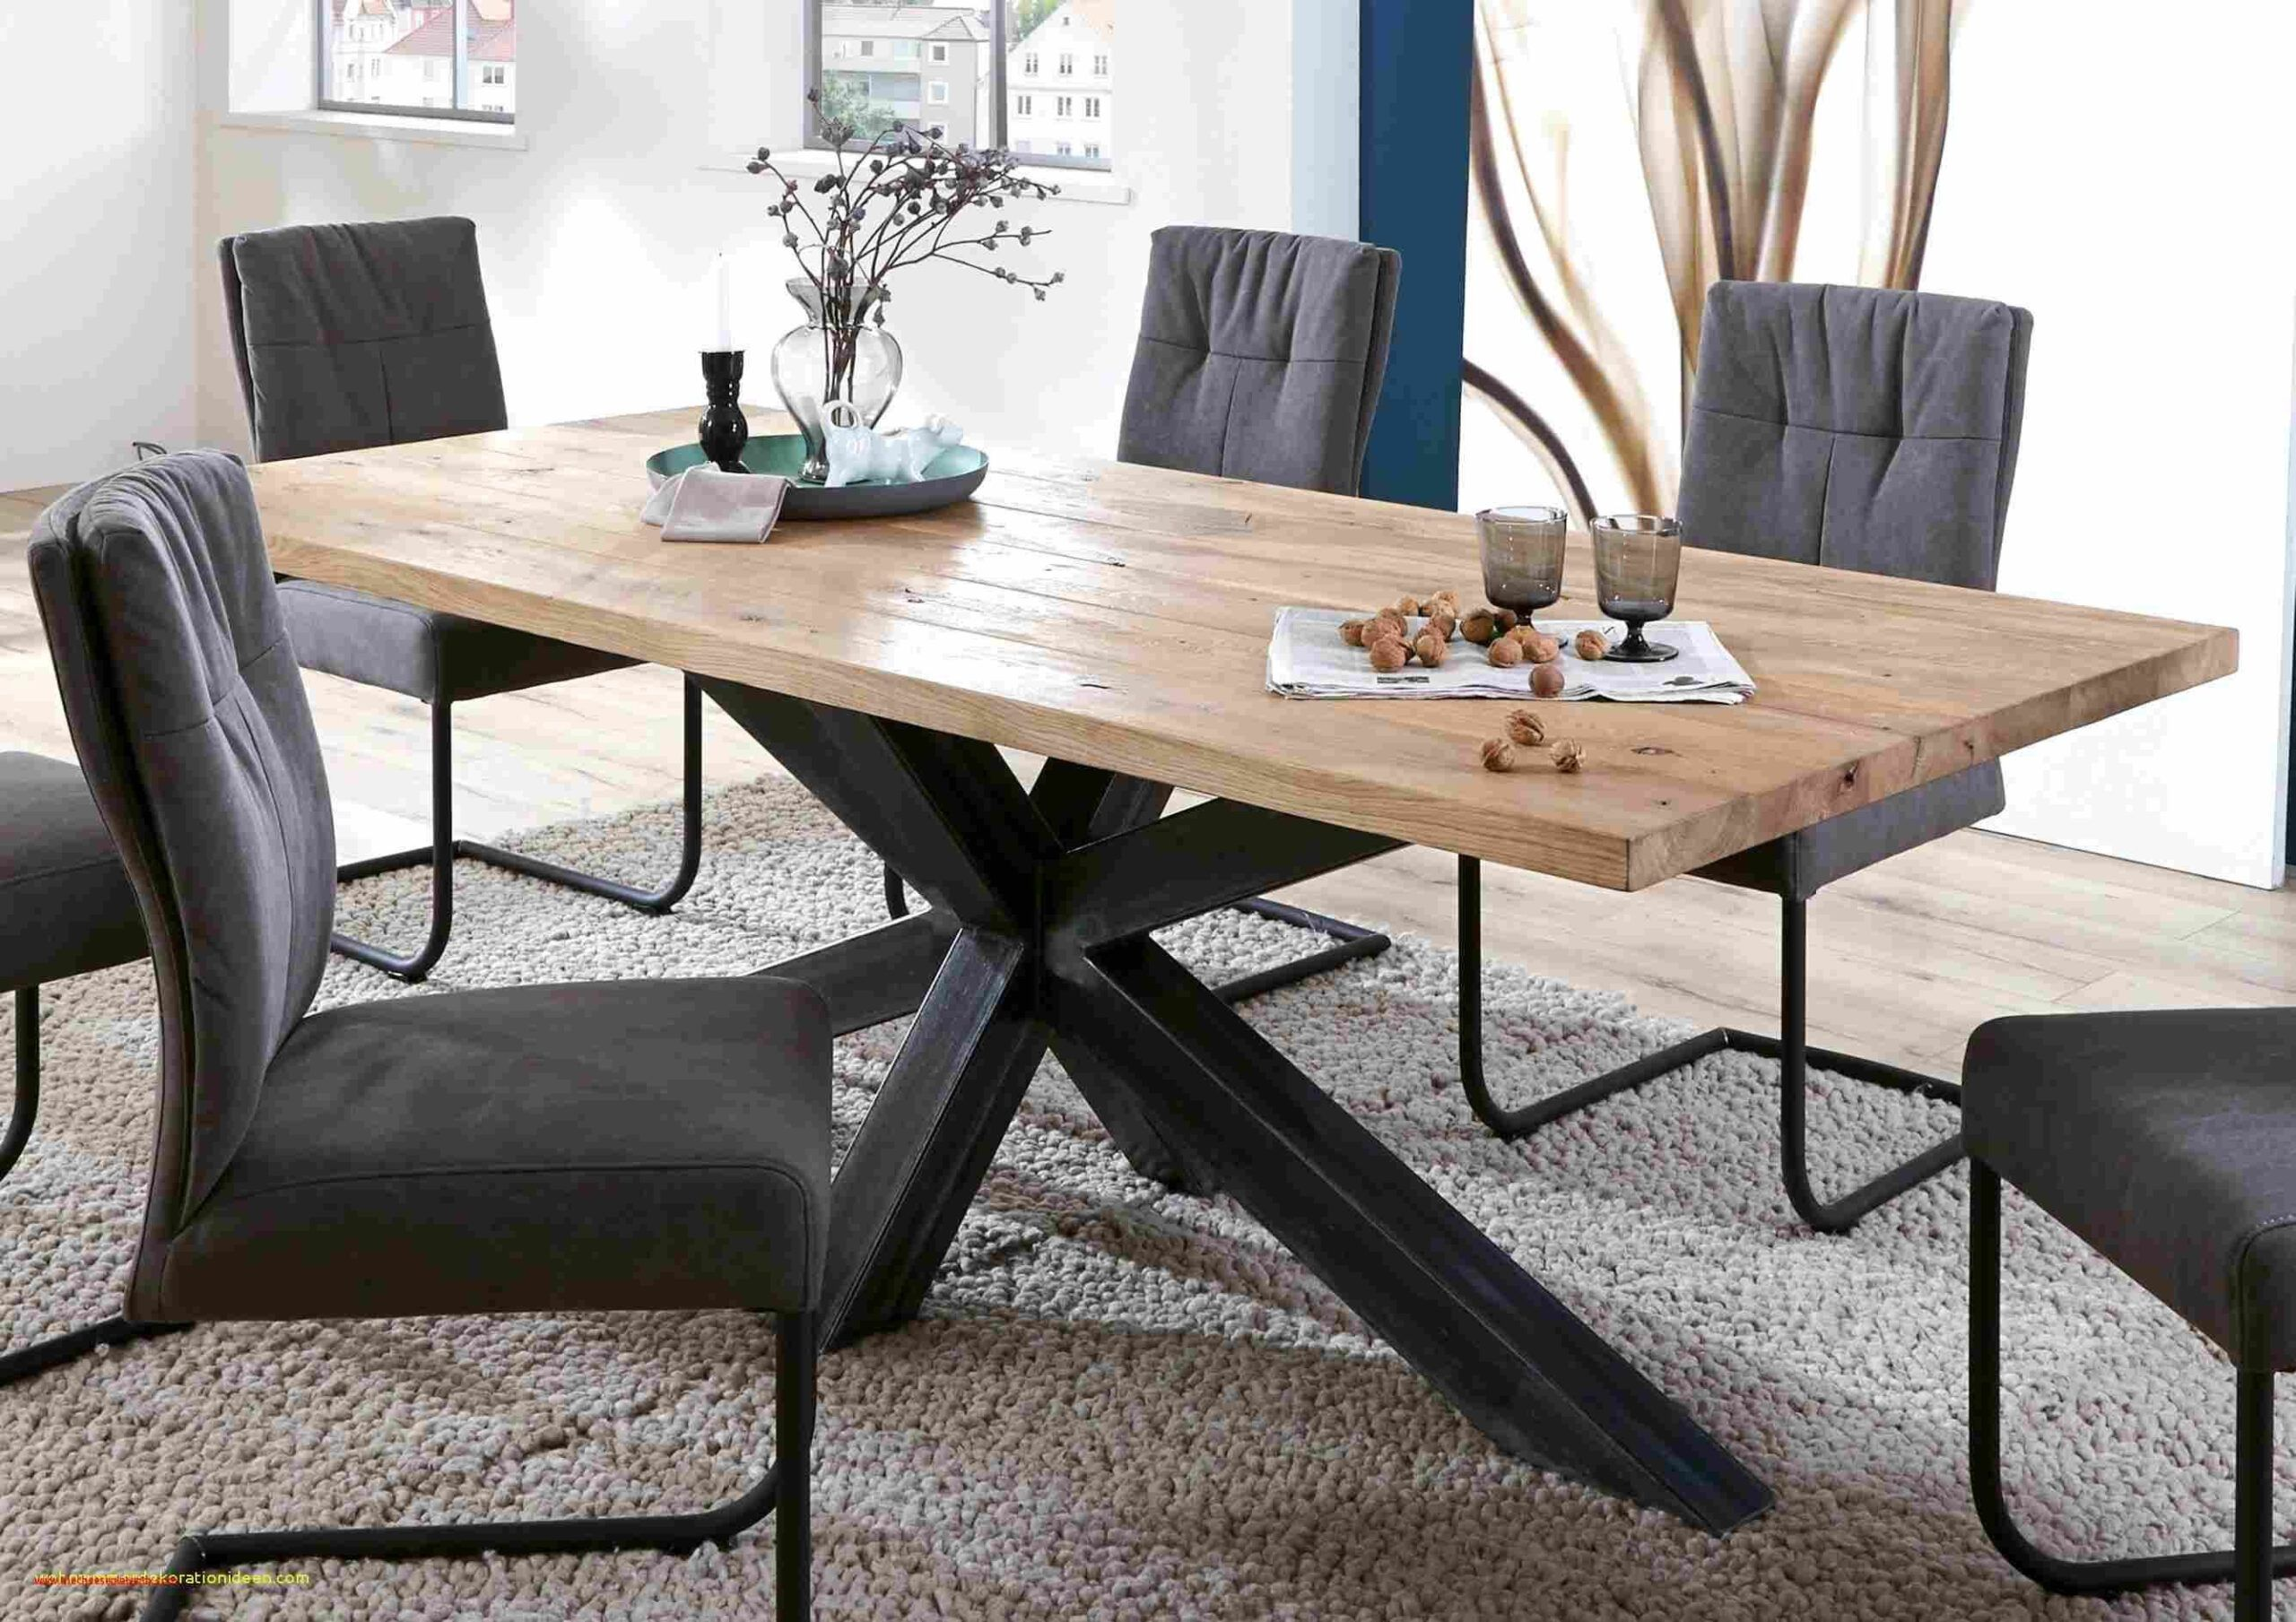 10 Esstisch Stühle Gebraucht Kaufen In 2020 Ikea Wood Table Reclaimed Wood Dining Table Dining Table Top - Design Stuhle Gebraucht